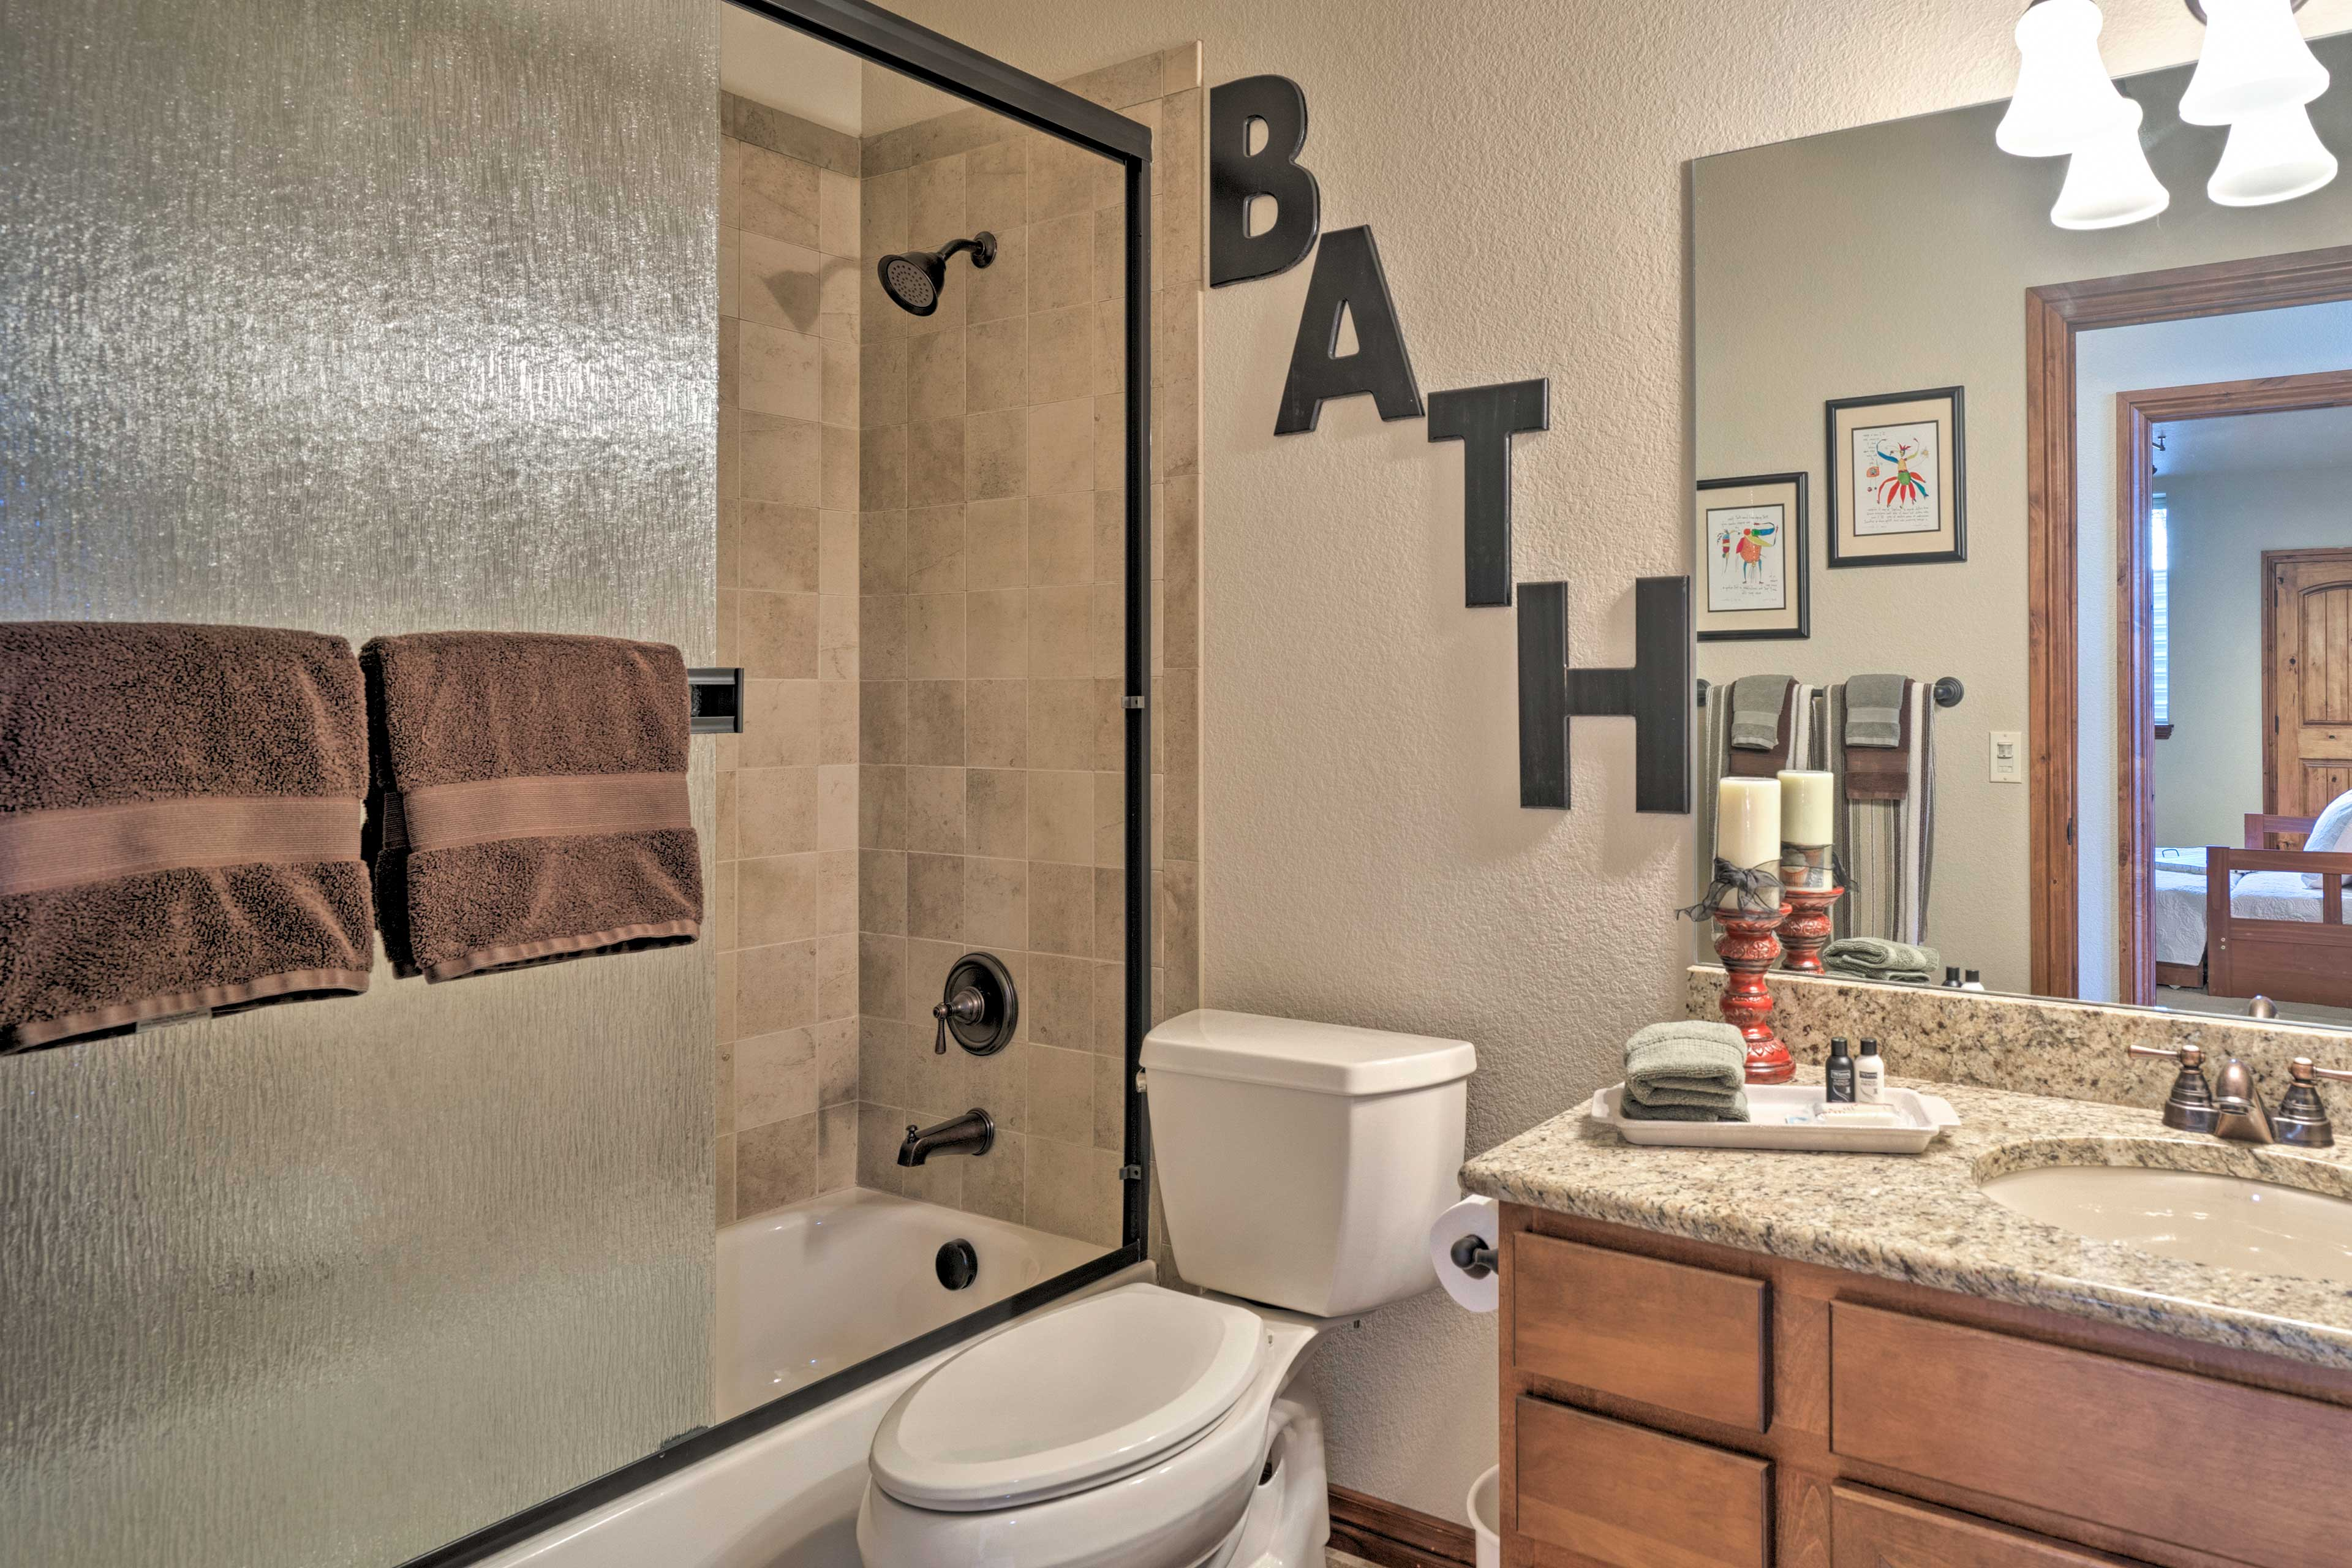 Rinse or soak in this shower/tub combo.